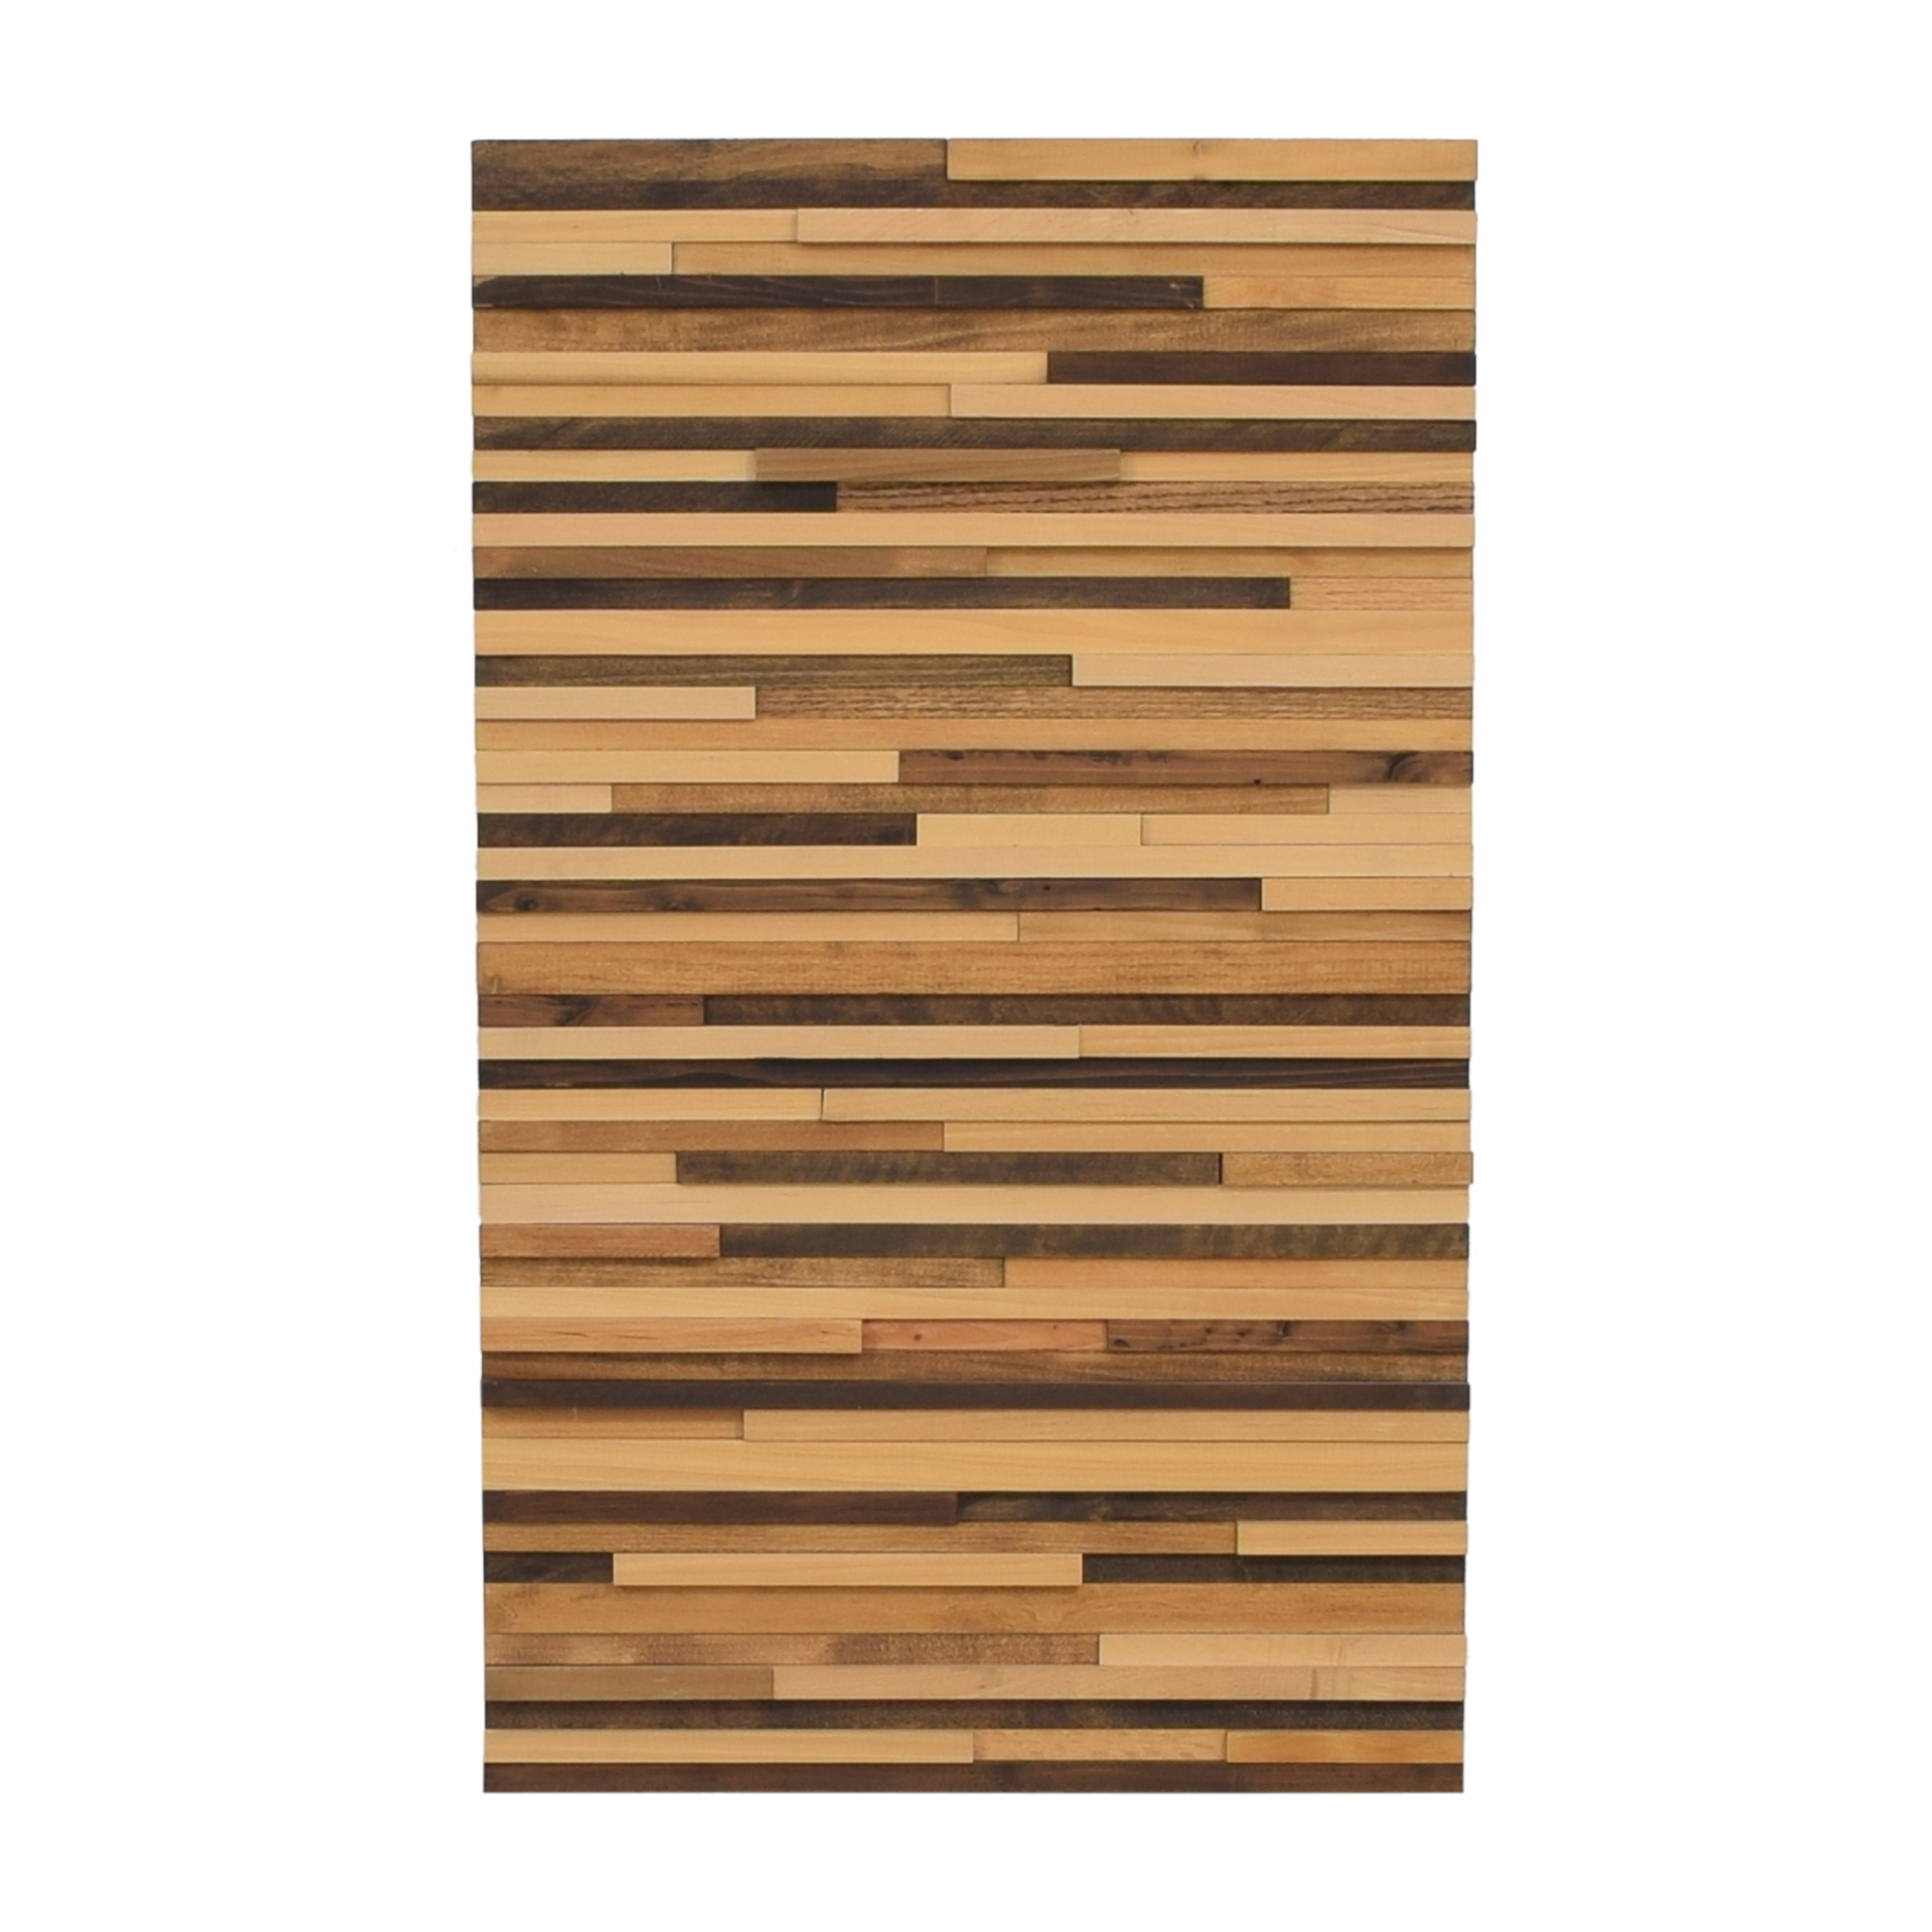 shop Wood Mosaic Wall Art  Decor